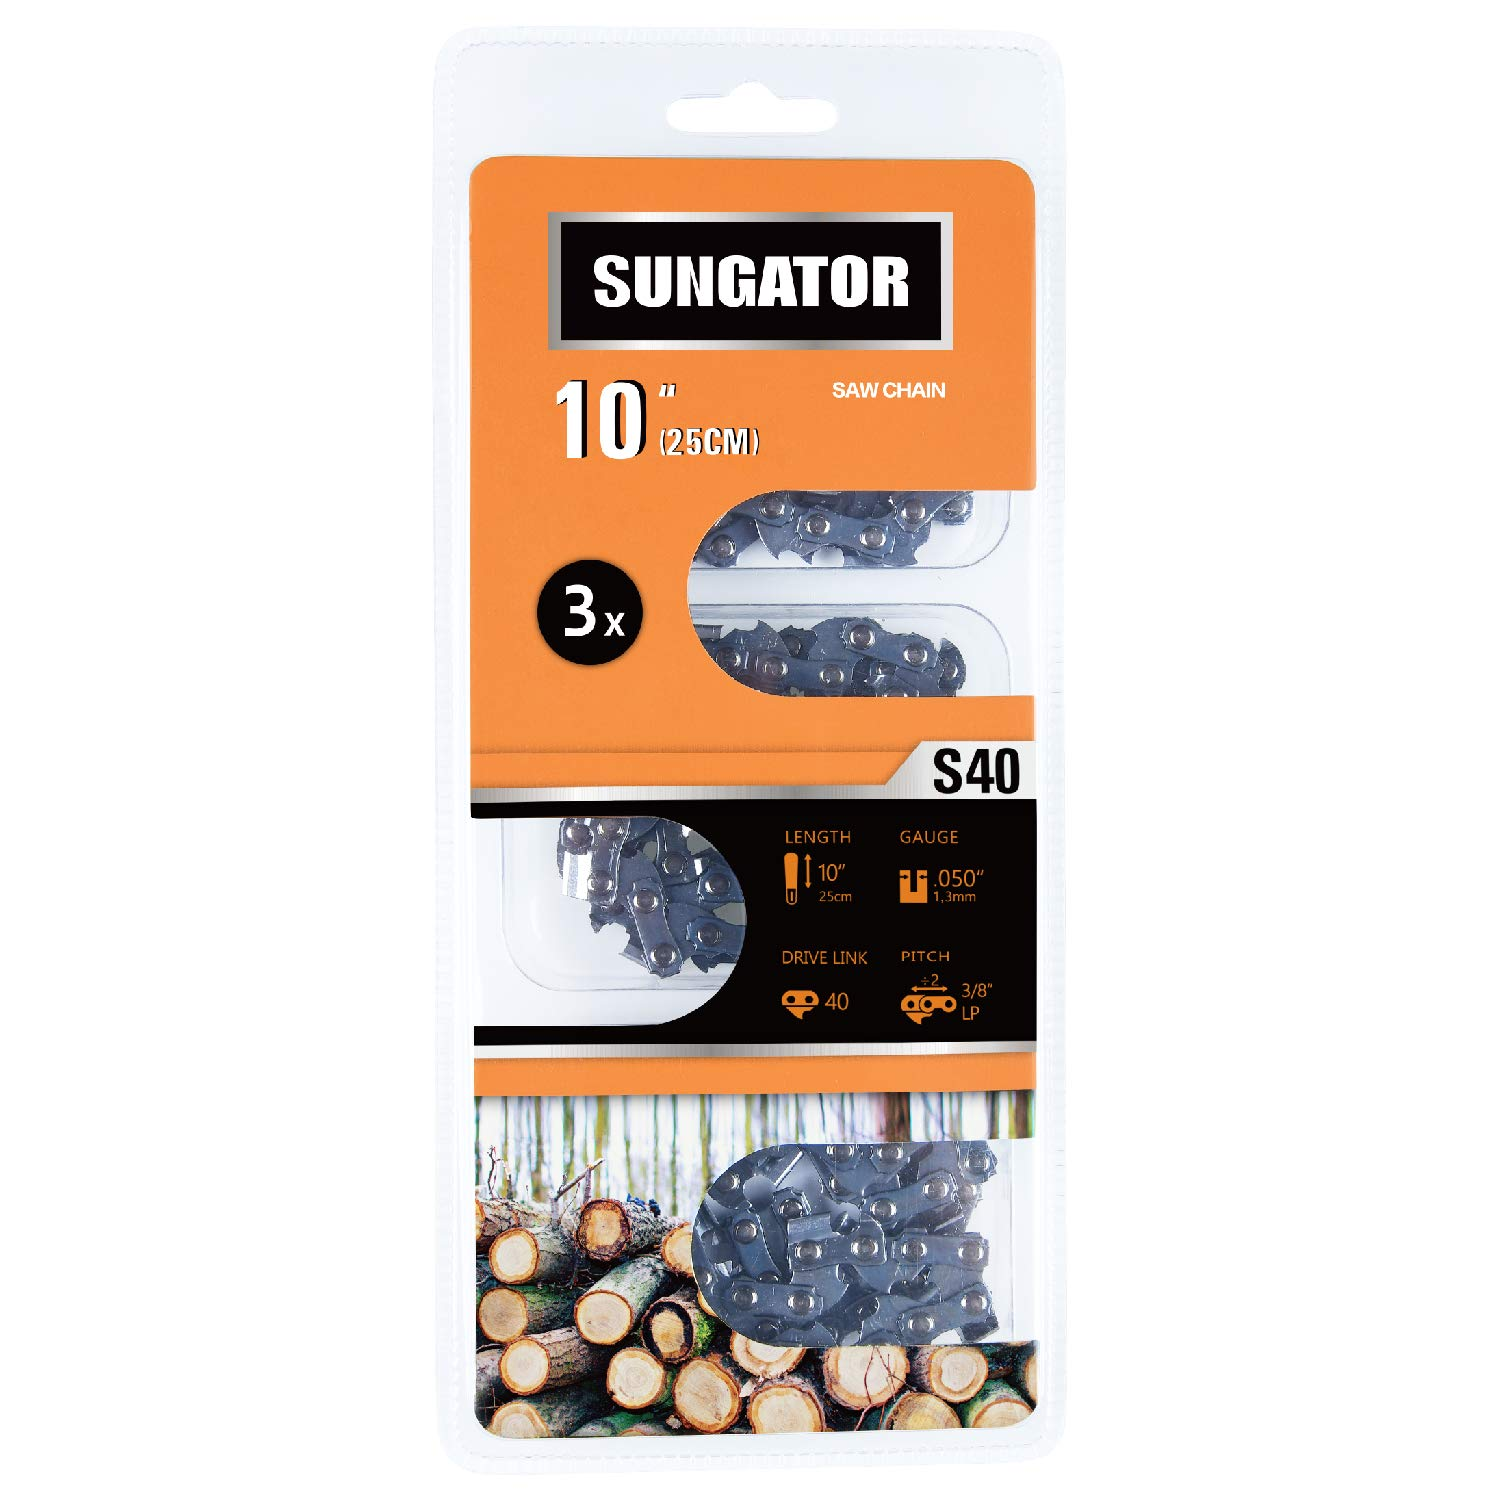 SUNGATOR 3-Pack 10 Inch Chainsaw Chain SG-S40, 3/8'' LP Pitch - .050'' Gauge - 40 Drive Links, Fits Remington, Sun Joe, Craftsman, Poulan, Worx, Ryobi by SUNGATOR